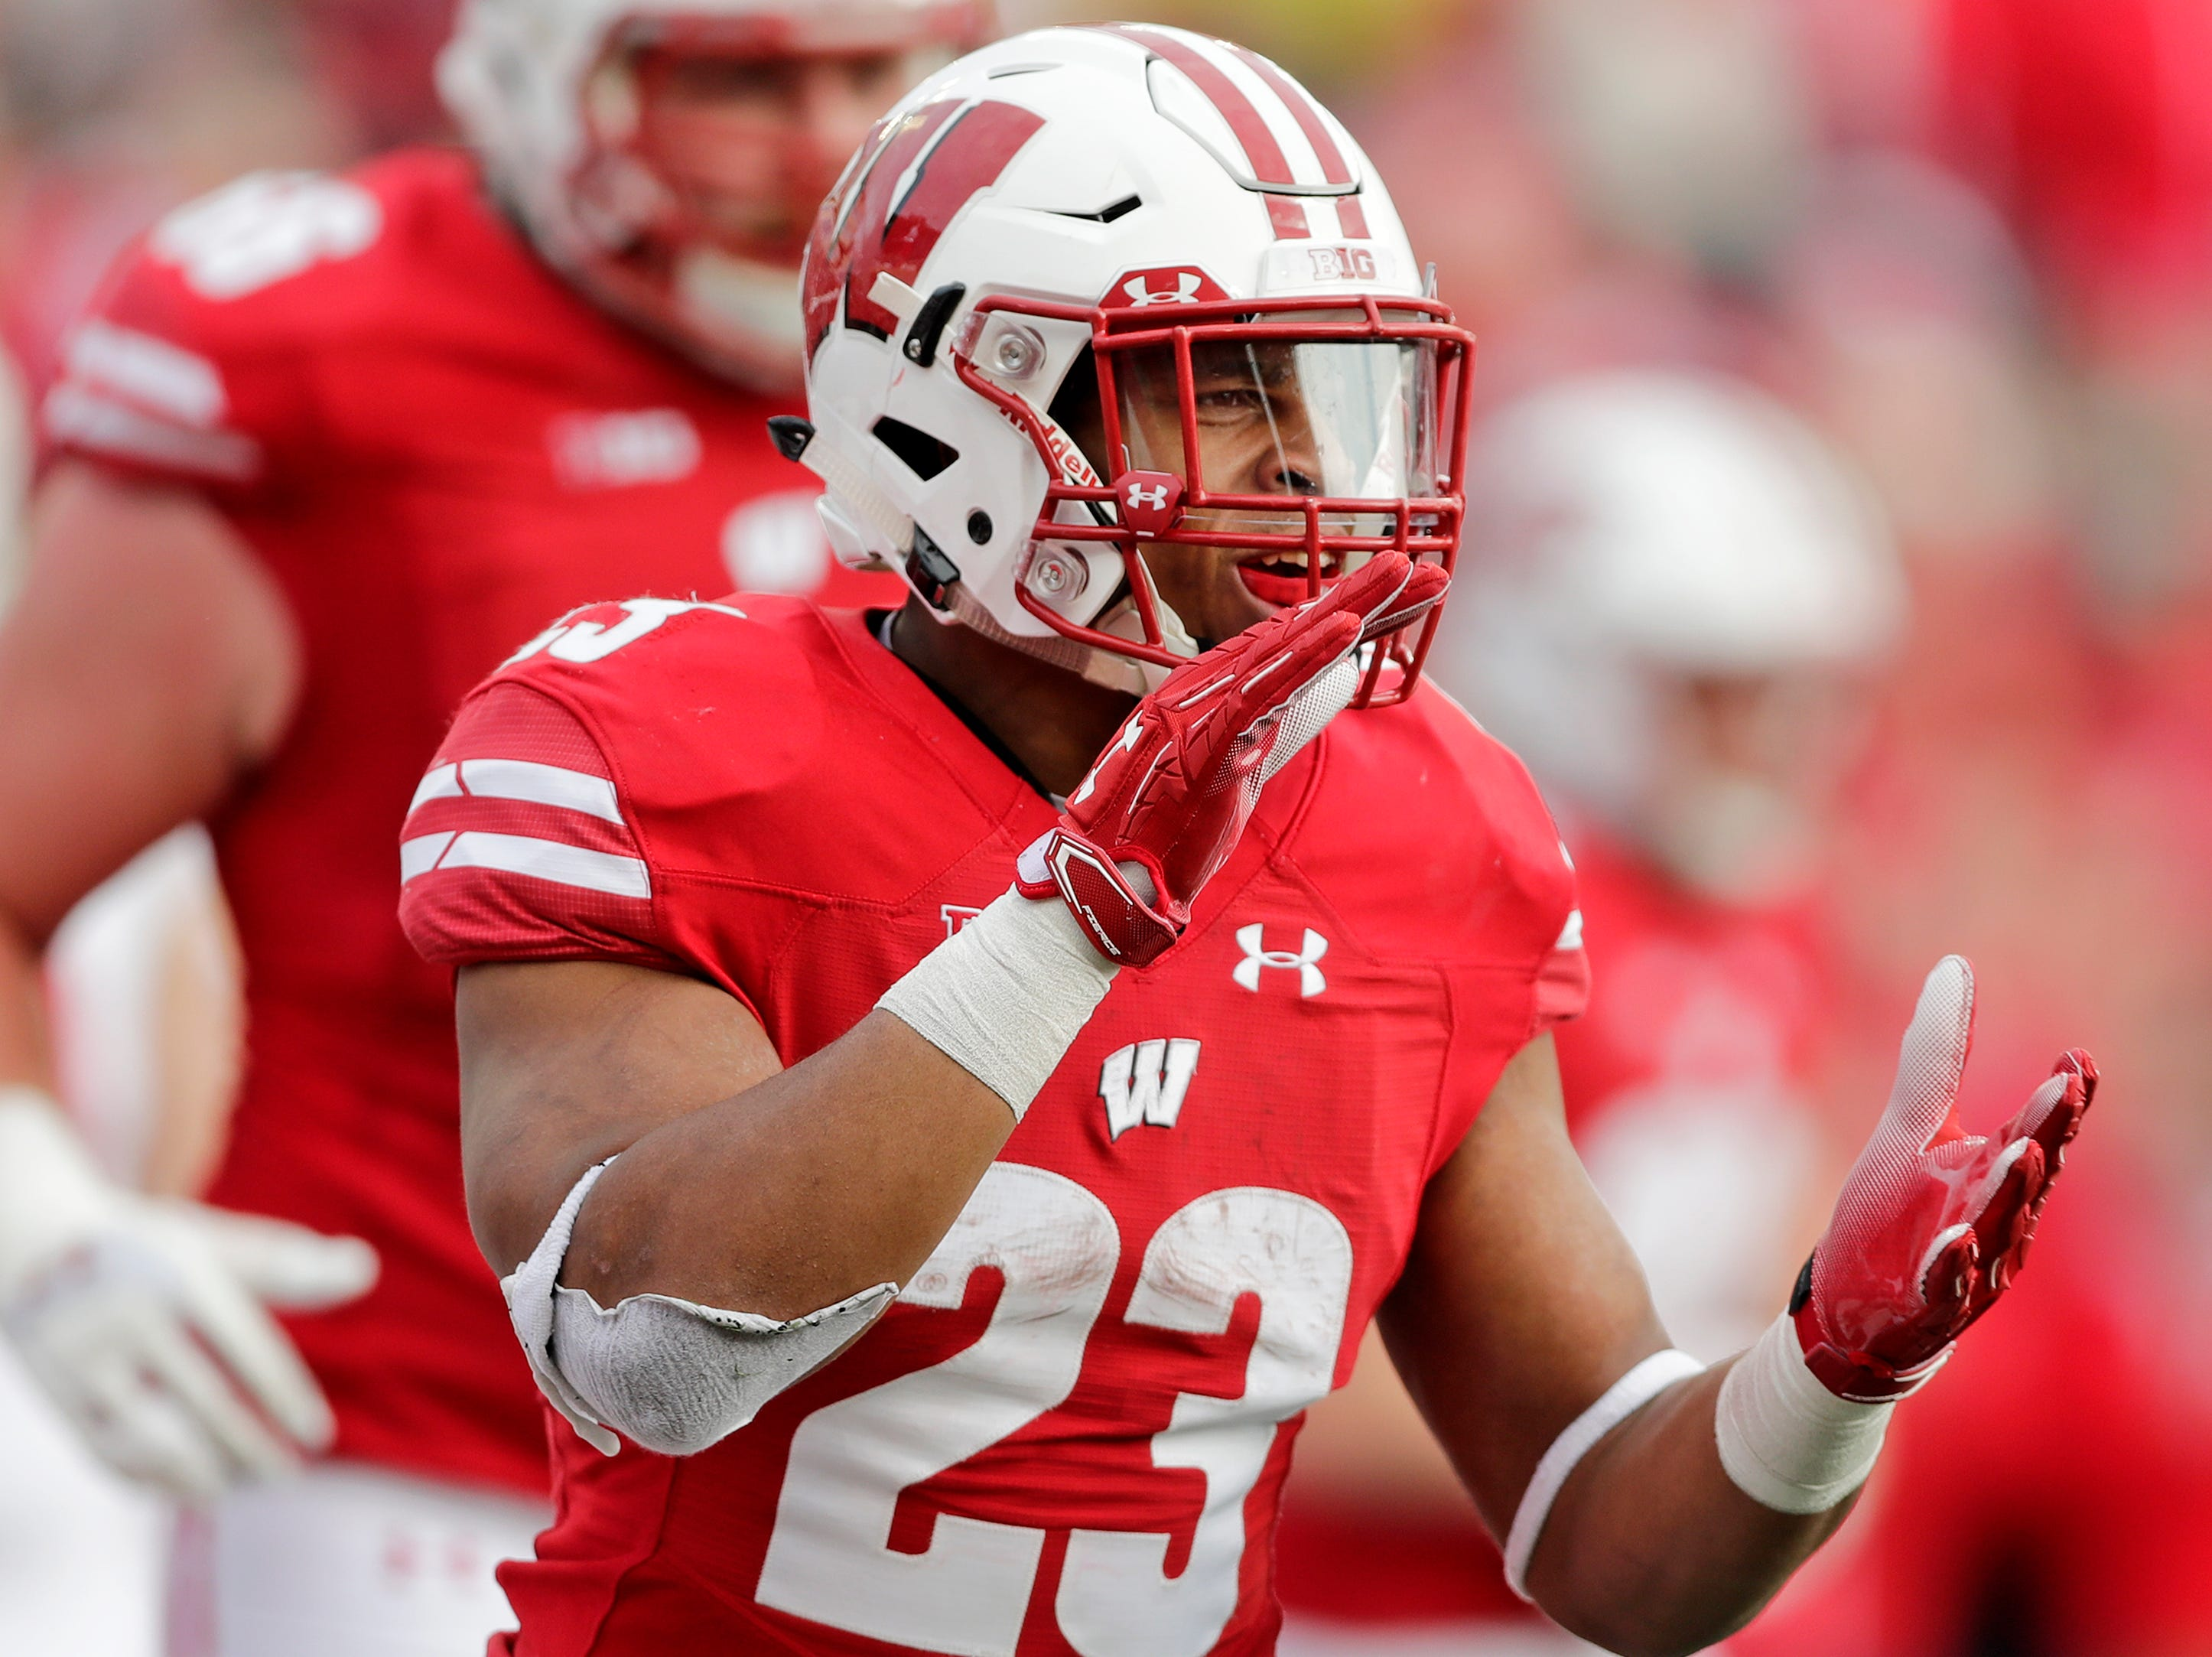 Wisconsin Badgers running back Jonathan Taylor (23) celebrates after scoring a touchdown against the Rutgers Scarlet Knights in the third quarter of a Big Ten football game at Camp Randall Stadium on Saturday, November 3, 2018 in Madison, Wis.Adam Wesley/USA TODAY NETWORK-Wisconsin